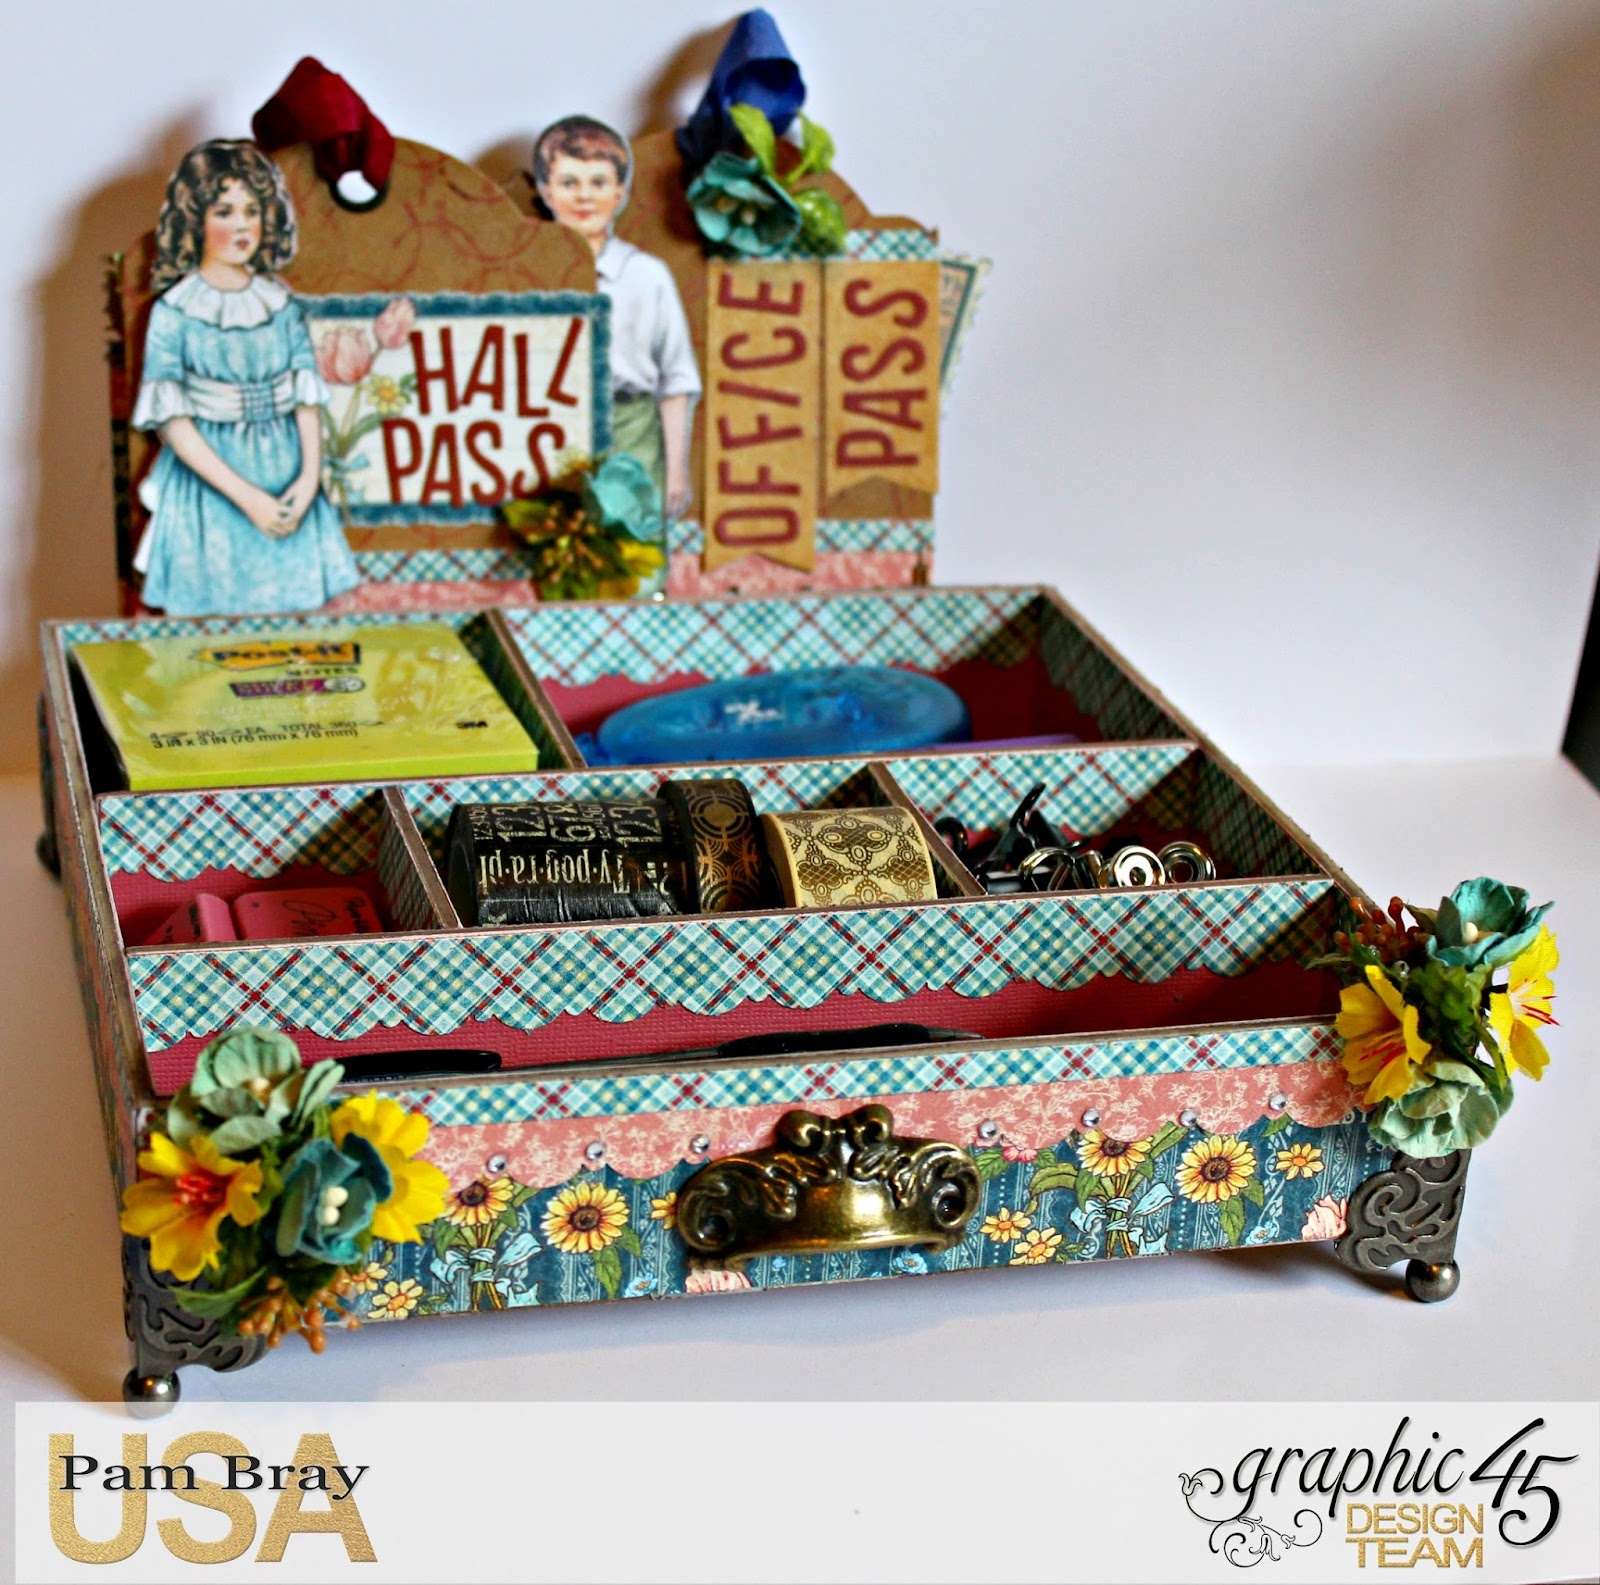 2017 G45 Brand Ambassadors- 2017 Pam Bray  - June 2017 - Penny's Paper Dolls Desk Organizer  with Tutorial Photo 1_7236.jpg